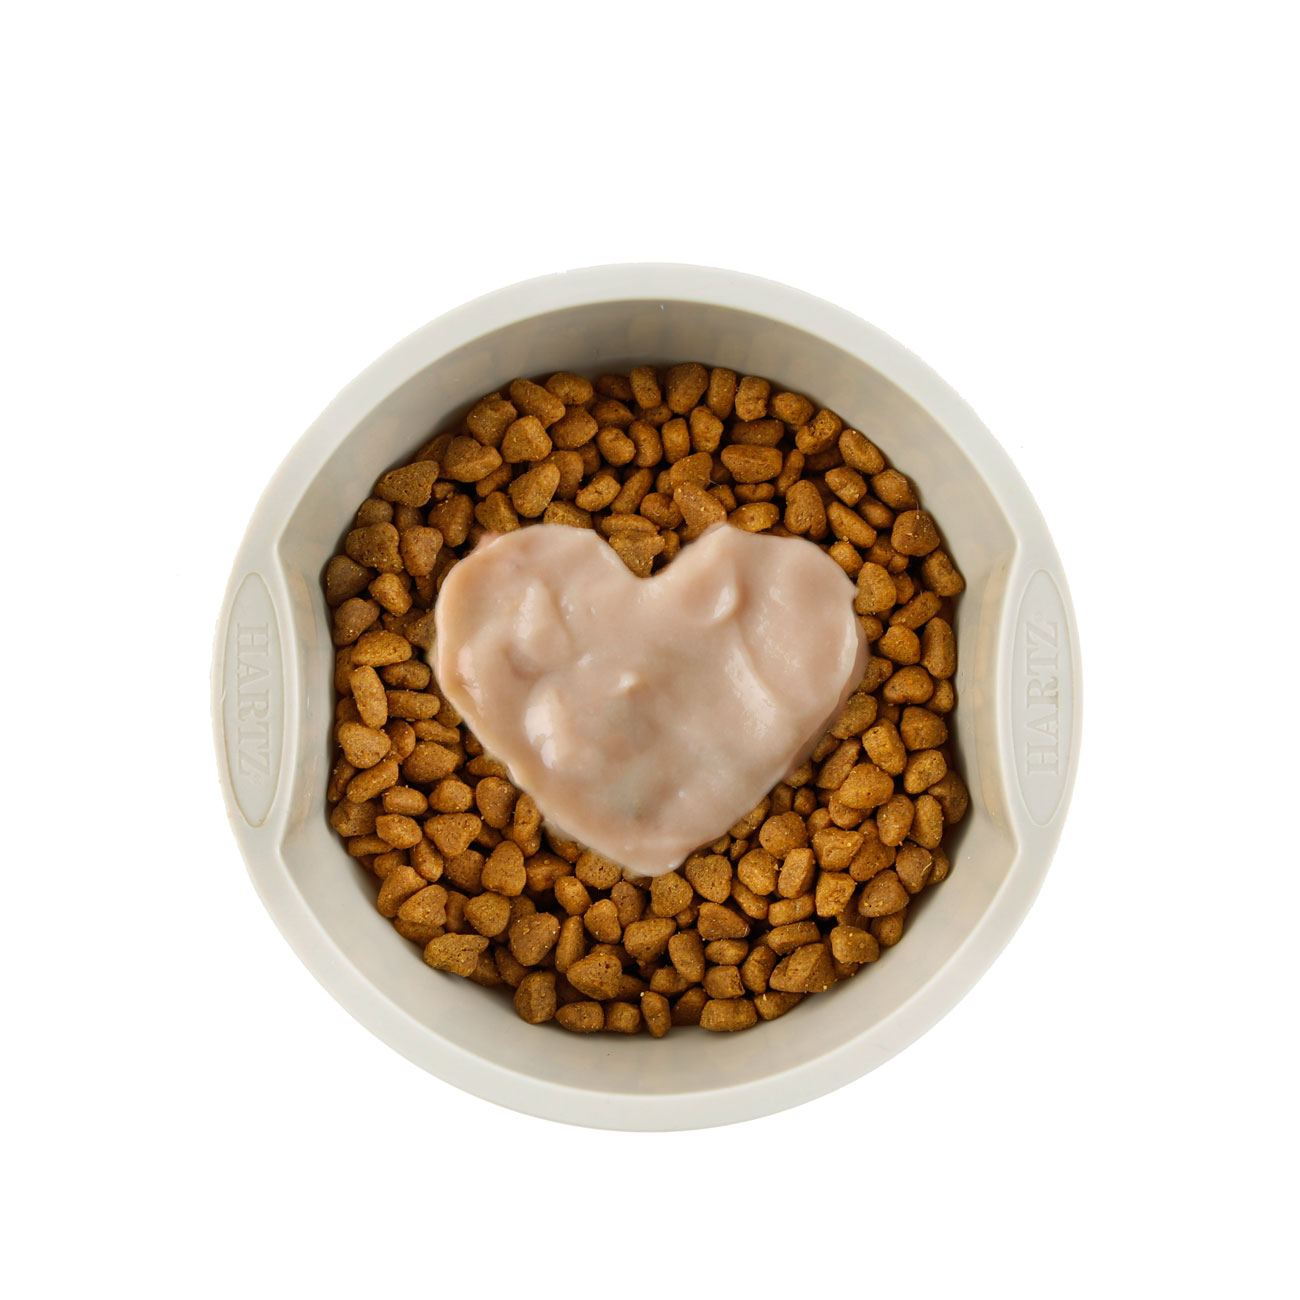 Hartz Delectables Squeeze Up dog treat for small dogs. In bowl used as a dog food topper.